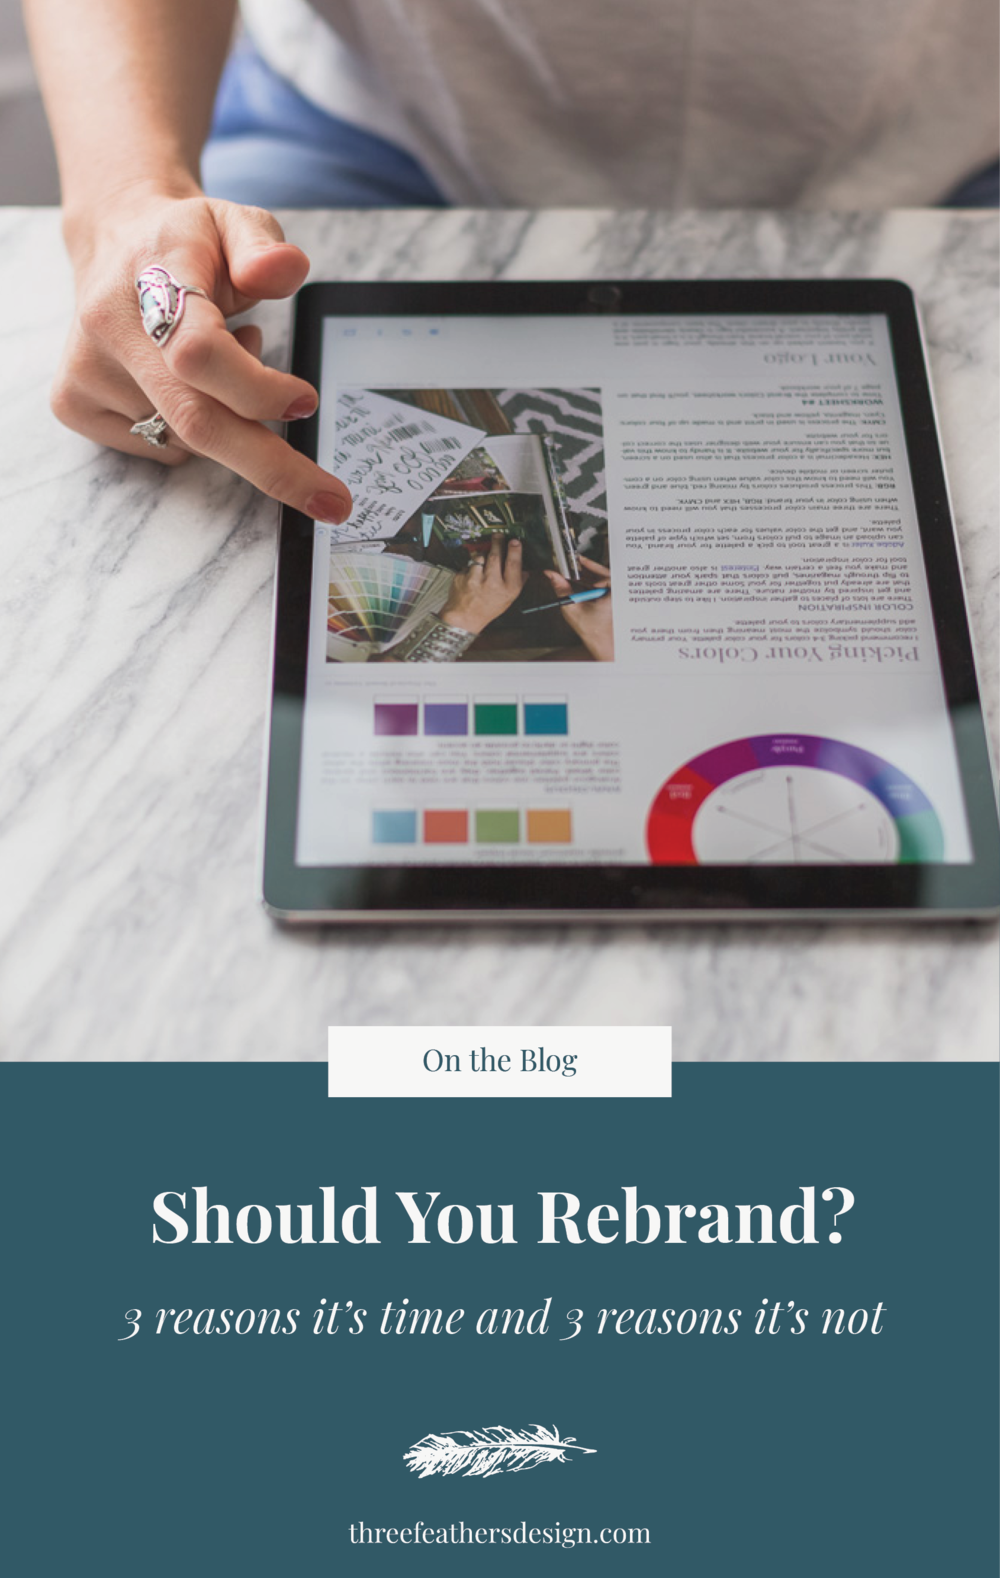 Should You Rebrand? | Three Feathers Design | threefeathersdesign.com